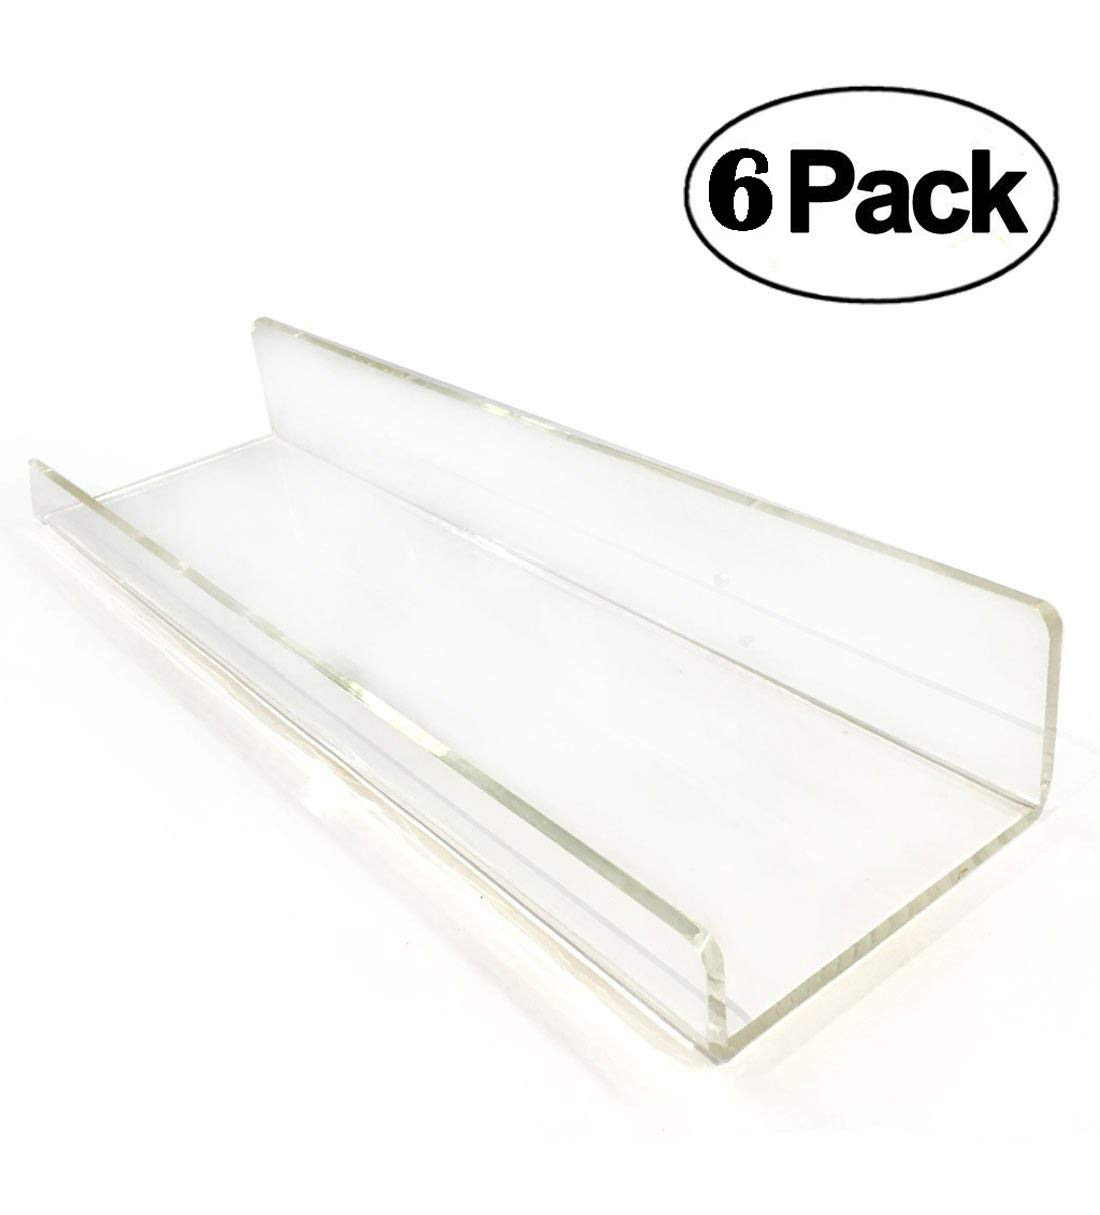 2 Clear Contemporary Floating Shelves - Acrylic Bathroom Shelf Set, Nail Polish Organizer Cosmetics Makeup or Spice Rack, Storage Shelves Non Wooden Wall Decor Hanging Bookshelf Display BlingSoul JBS-2ACRLC15X2